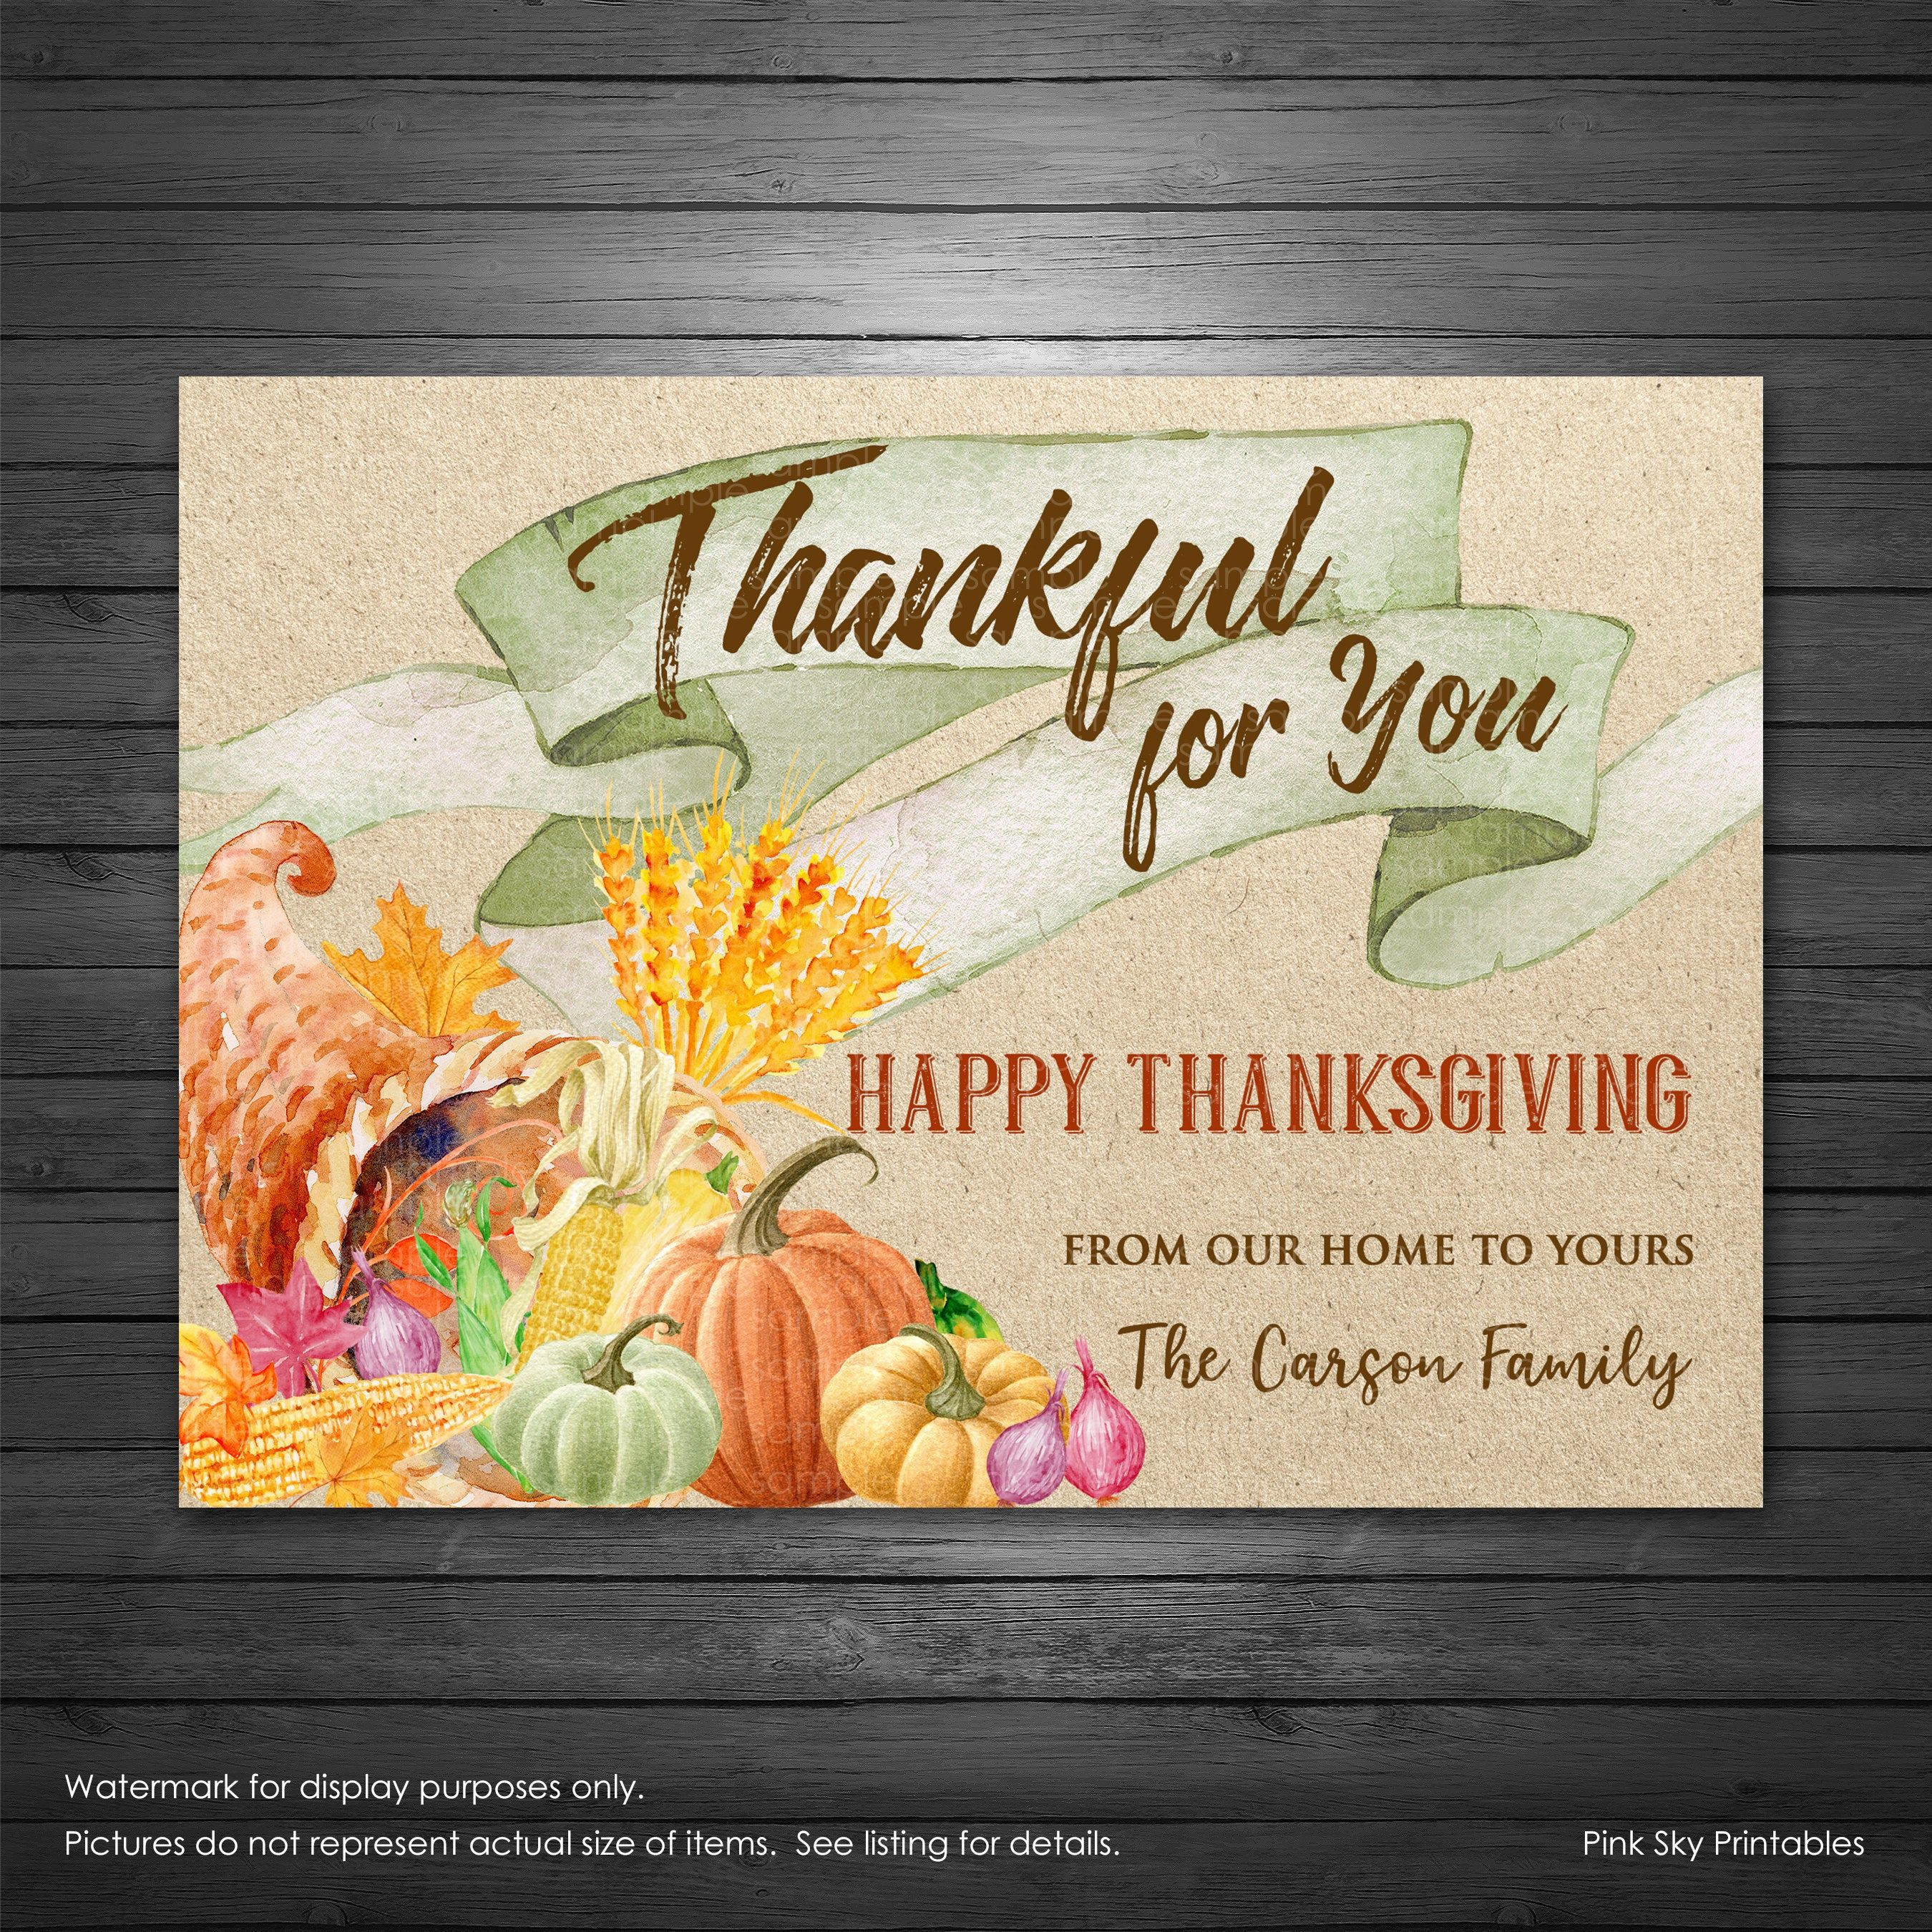 Thanksgiving Card Printable File Thankful For You Card Thanksgiving Greeting Card Per Thanksgiving Cards Thanksgiving Greetings Thanksgiving Greeting Cards